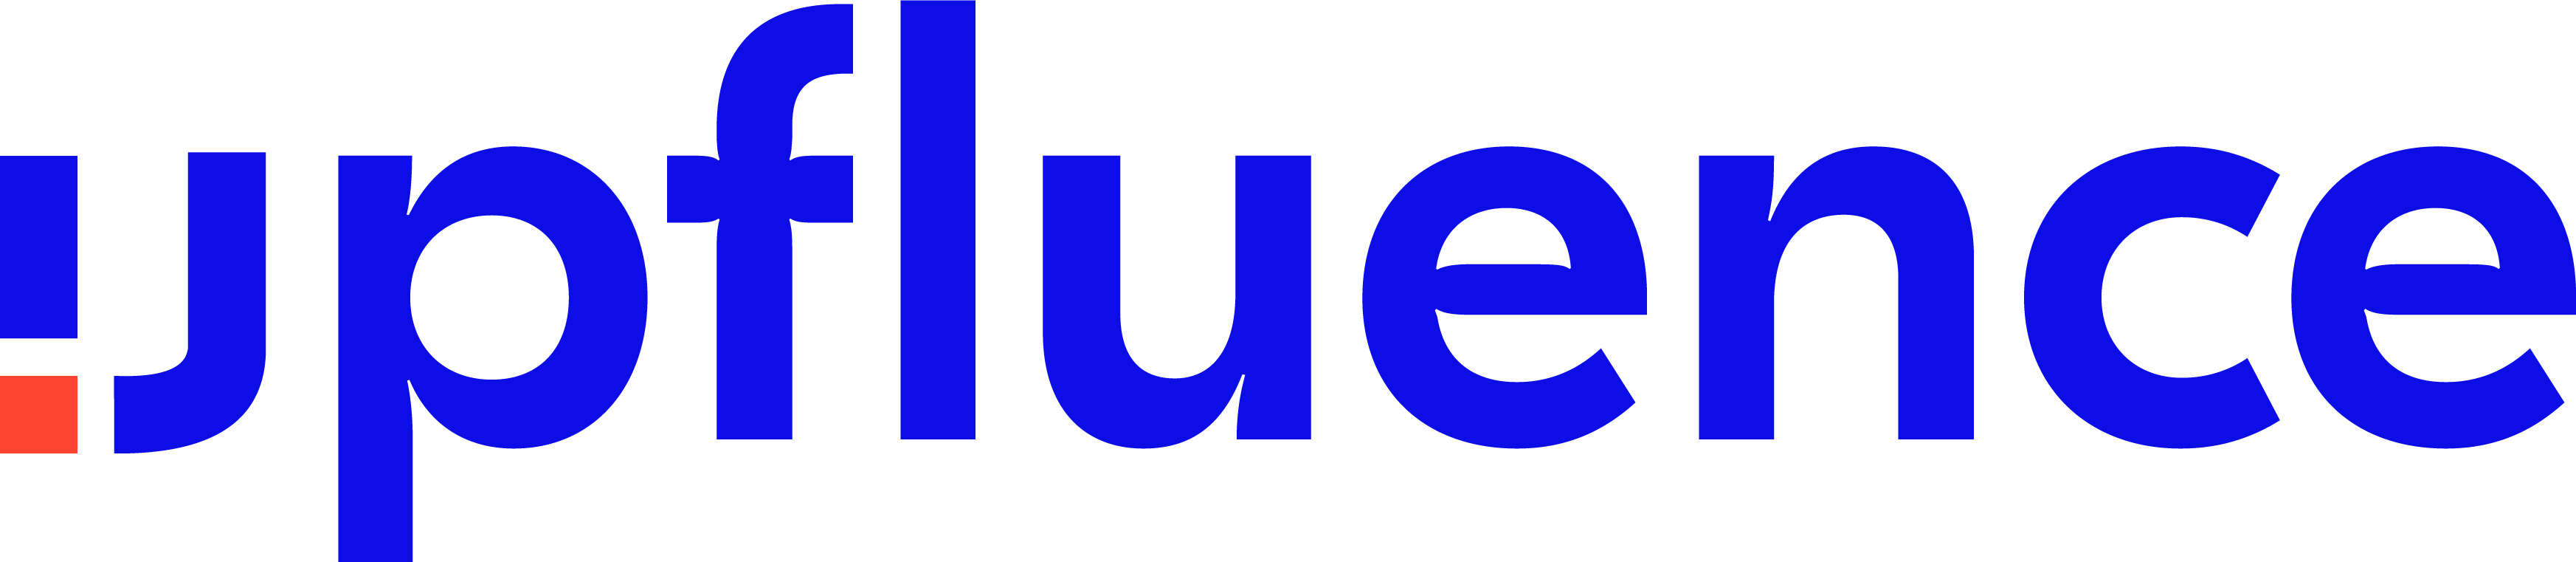 Bright blue lettering with one orange square in the first letter Upfluence partner logo